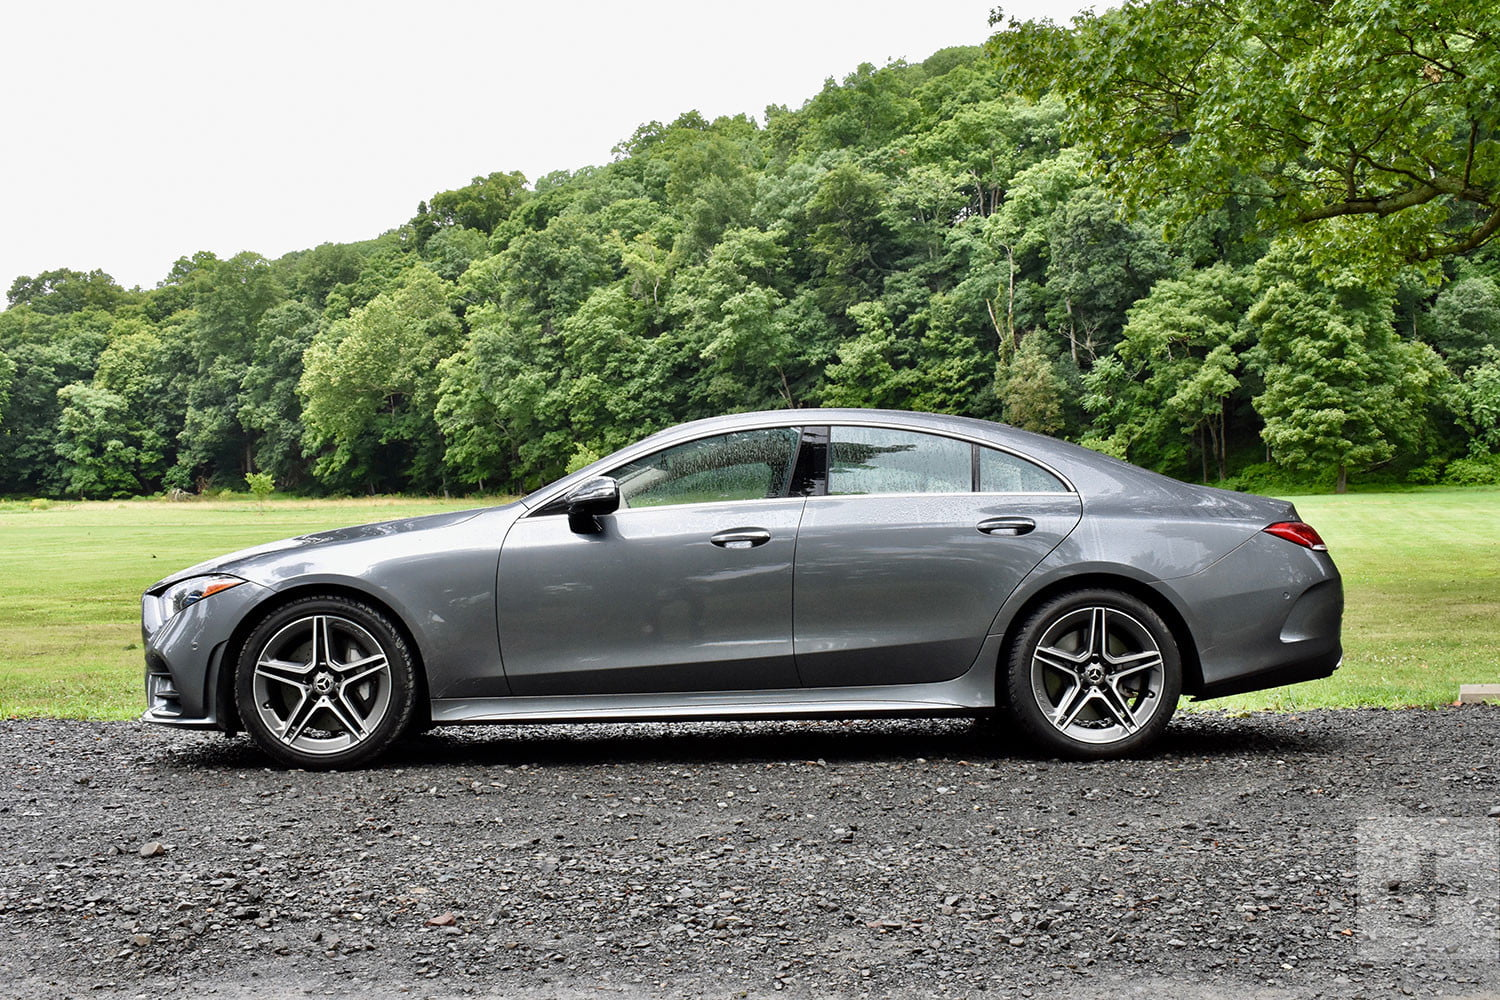 2019 Mercedes-Benz CLS450 4Matic First Drive Review